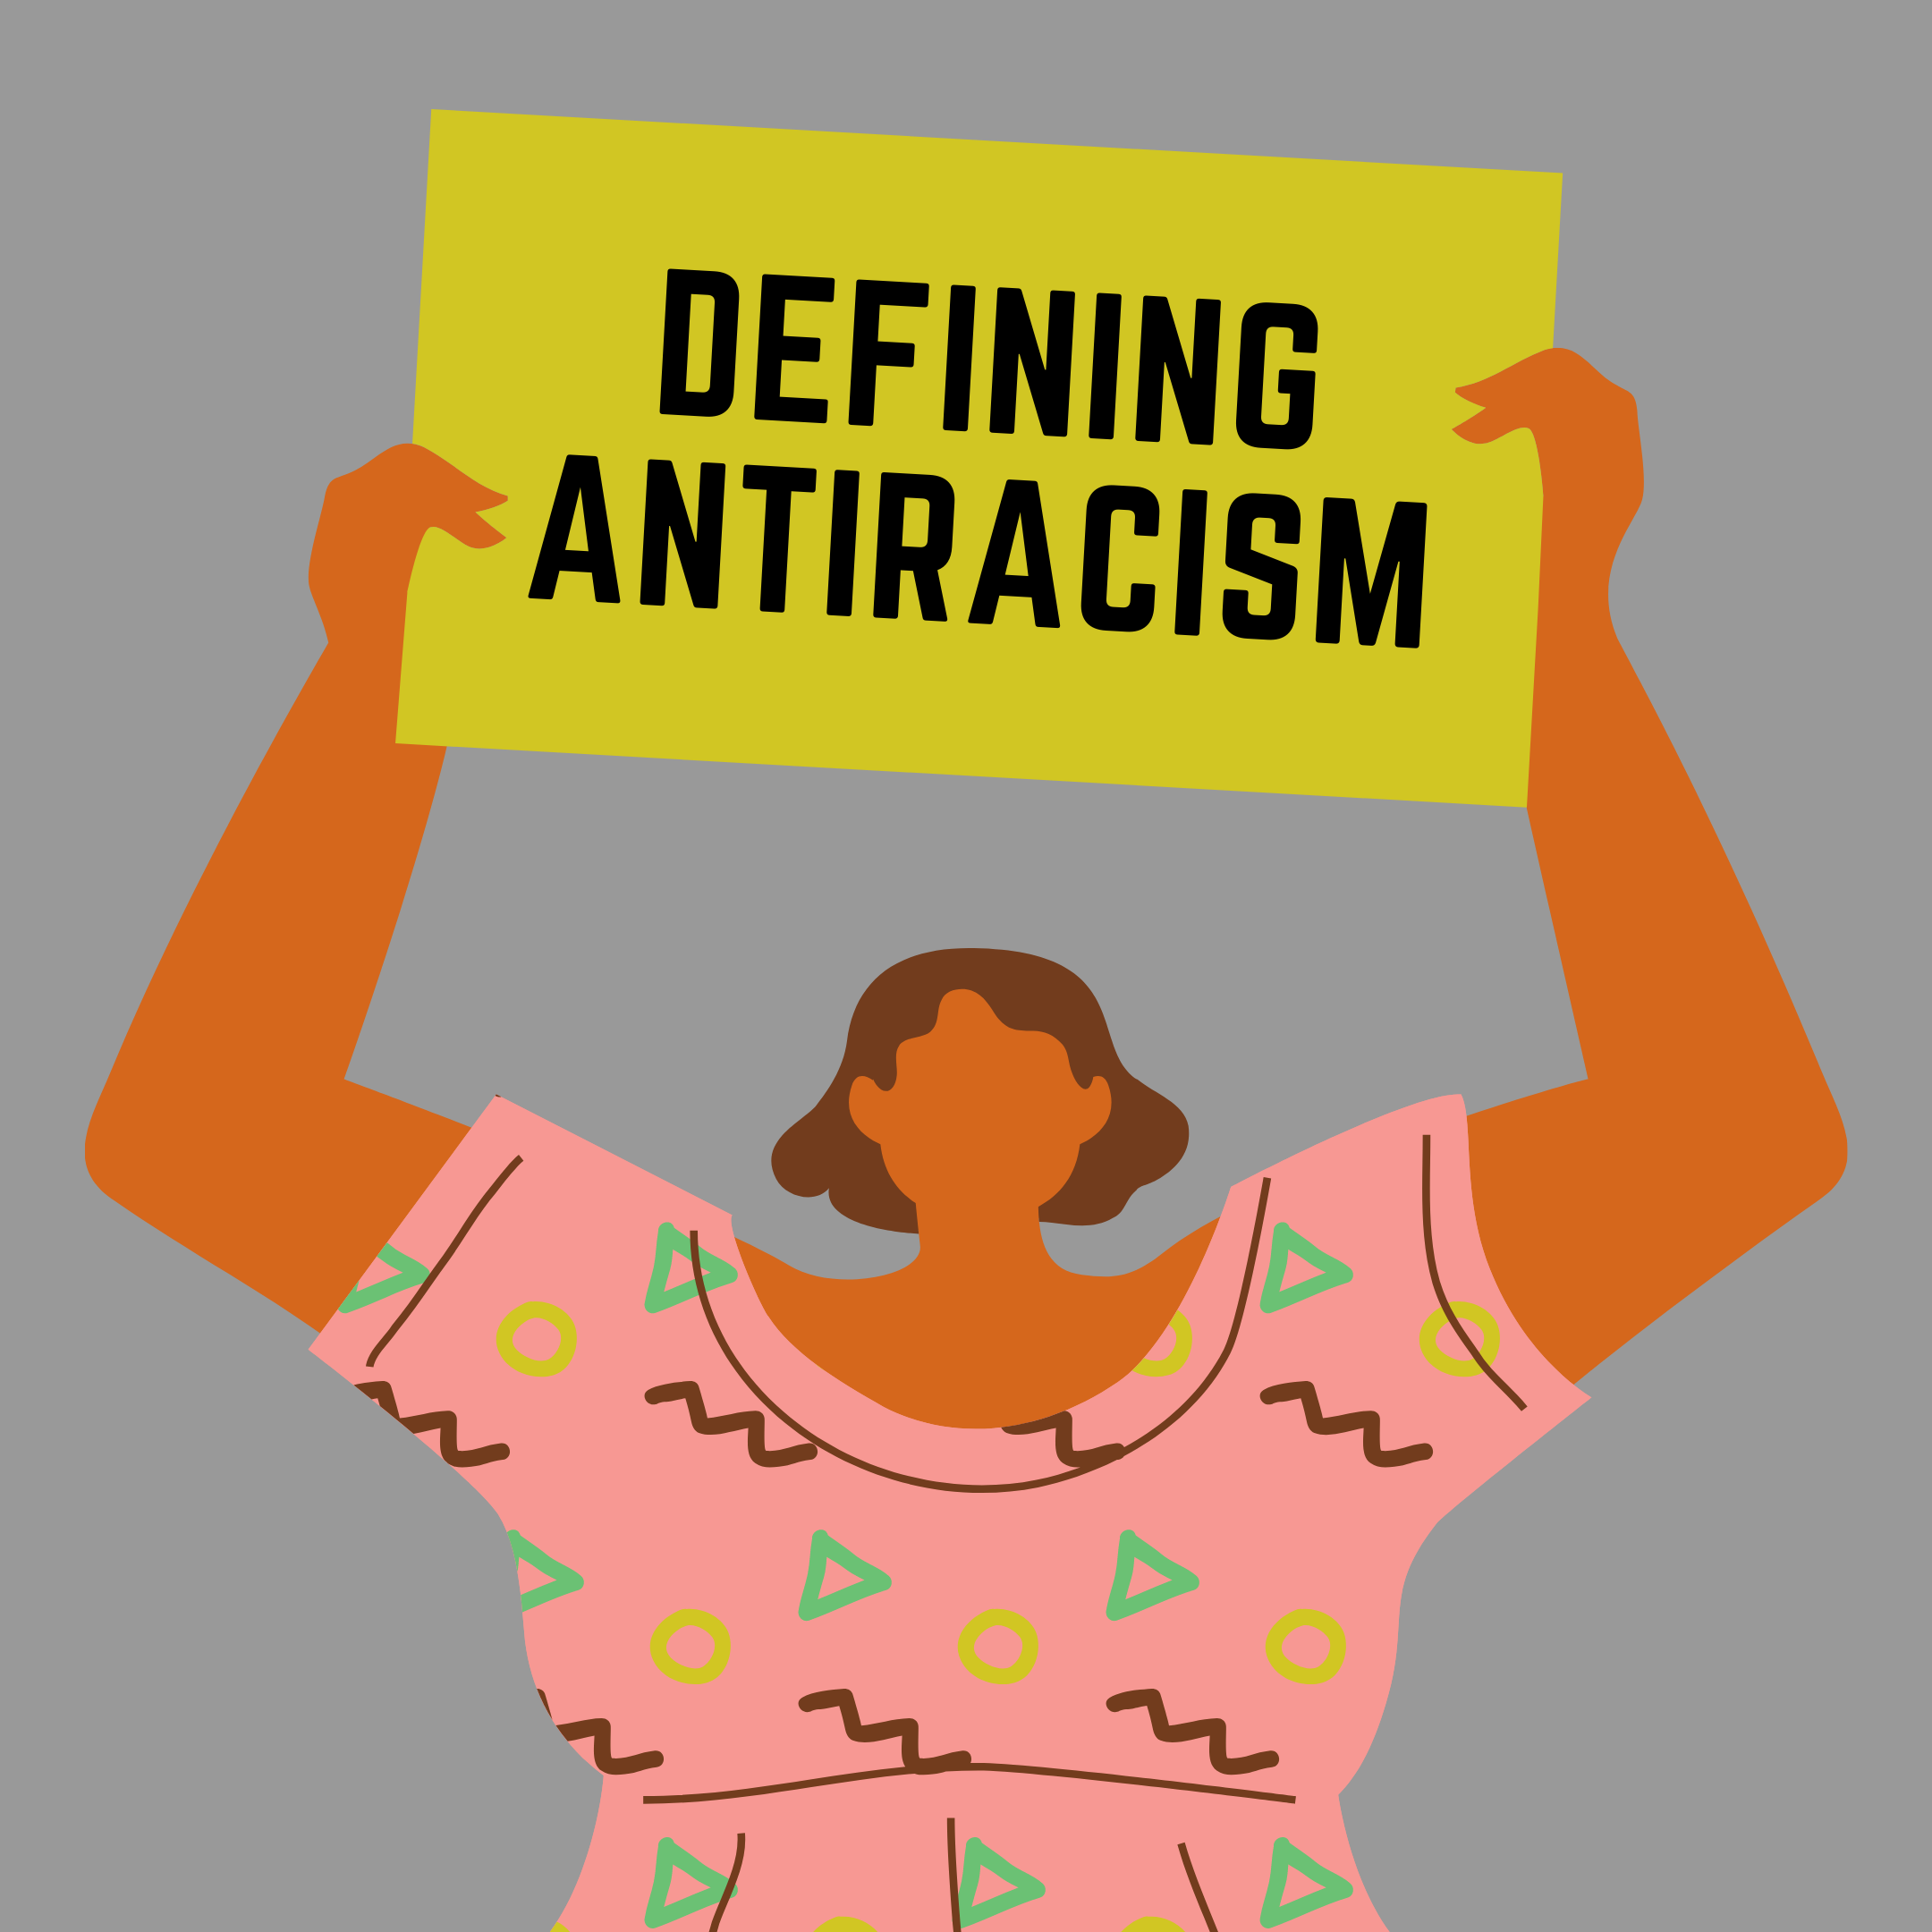 what is anti-racism?